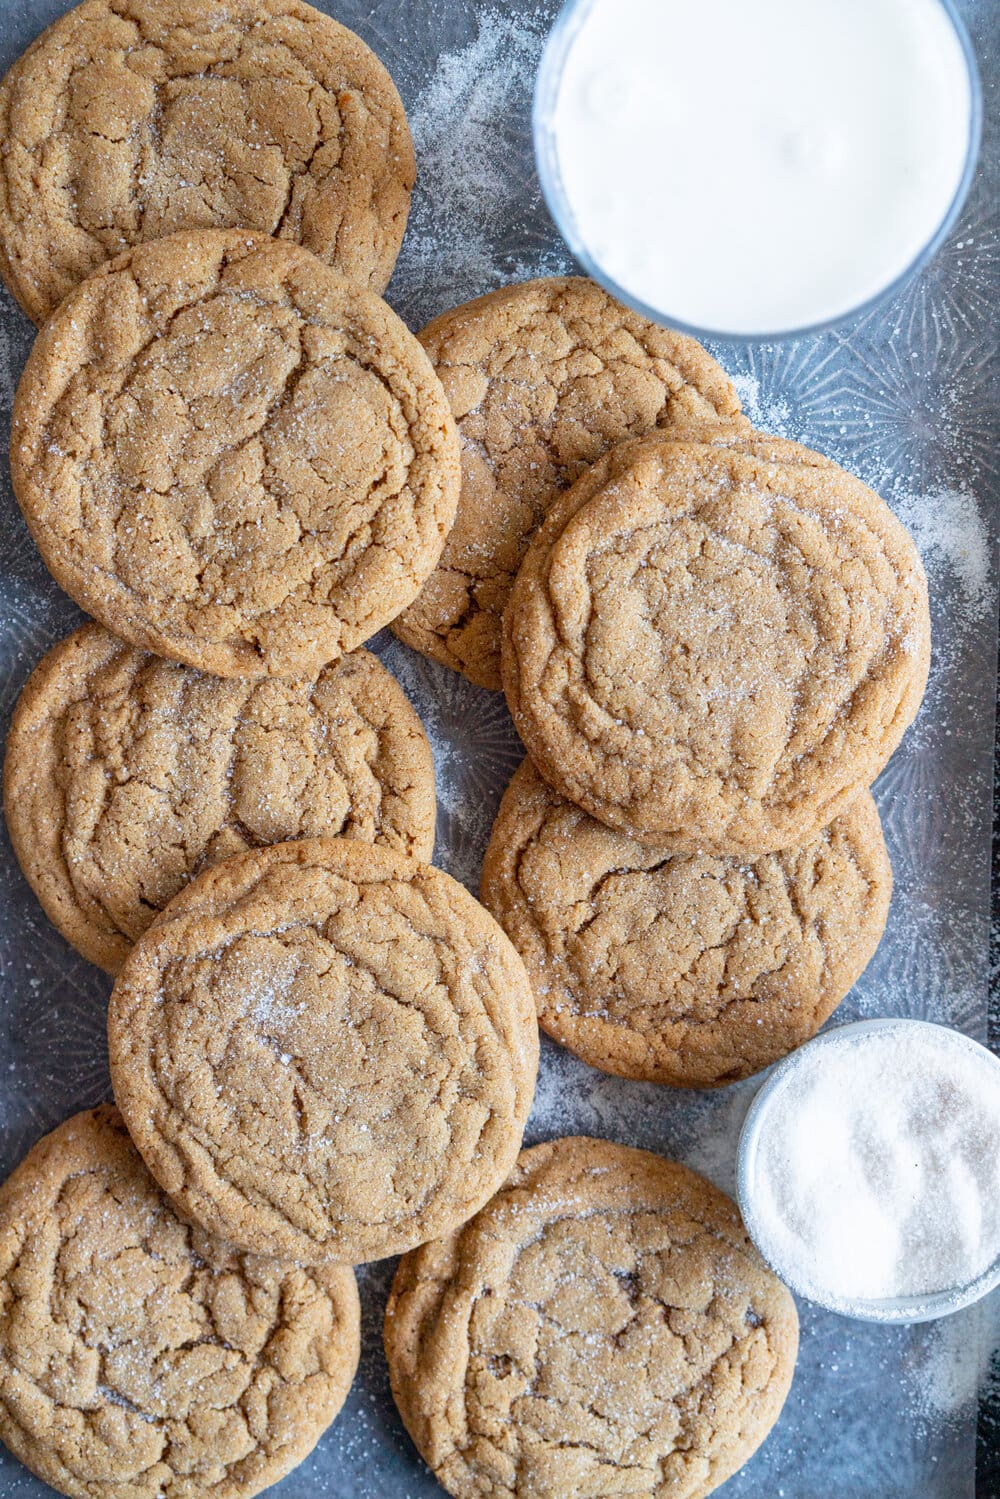 Ginger Molasses Sugar Cookies - soft and chewy ginger molasses sugar cookies, which come together super quickly and are the perfect seasonal cookie. #gingermolassescookie #softgingercookie